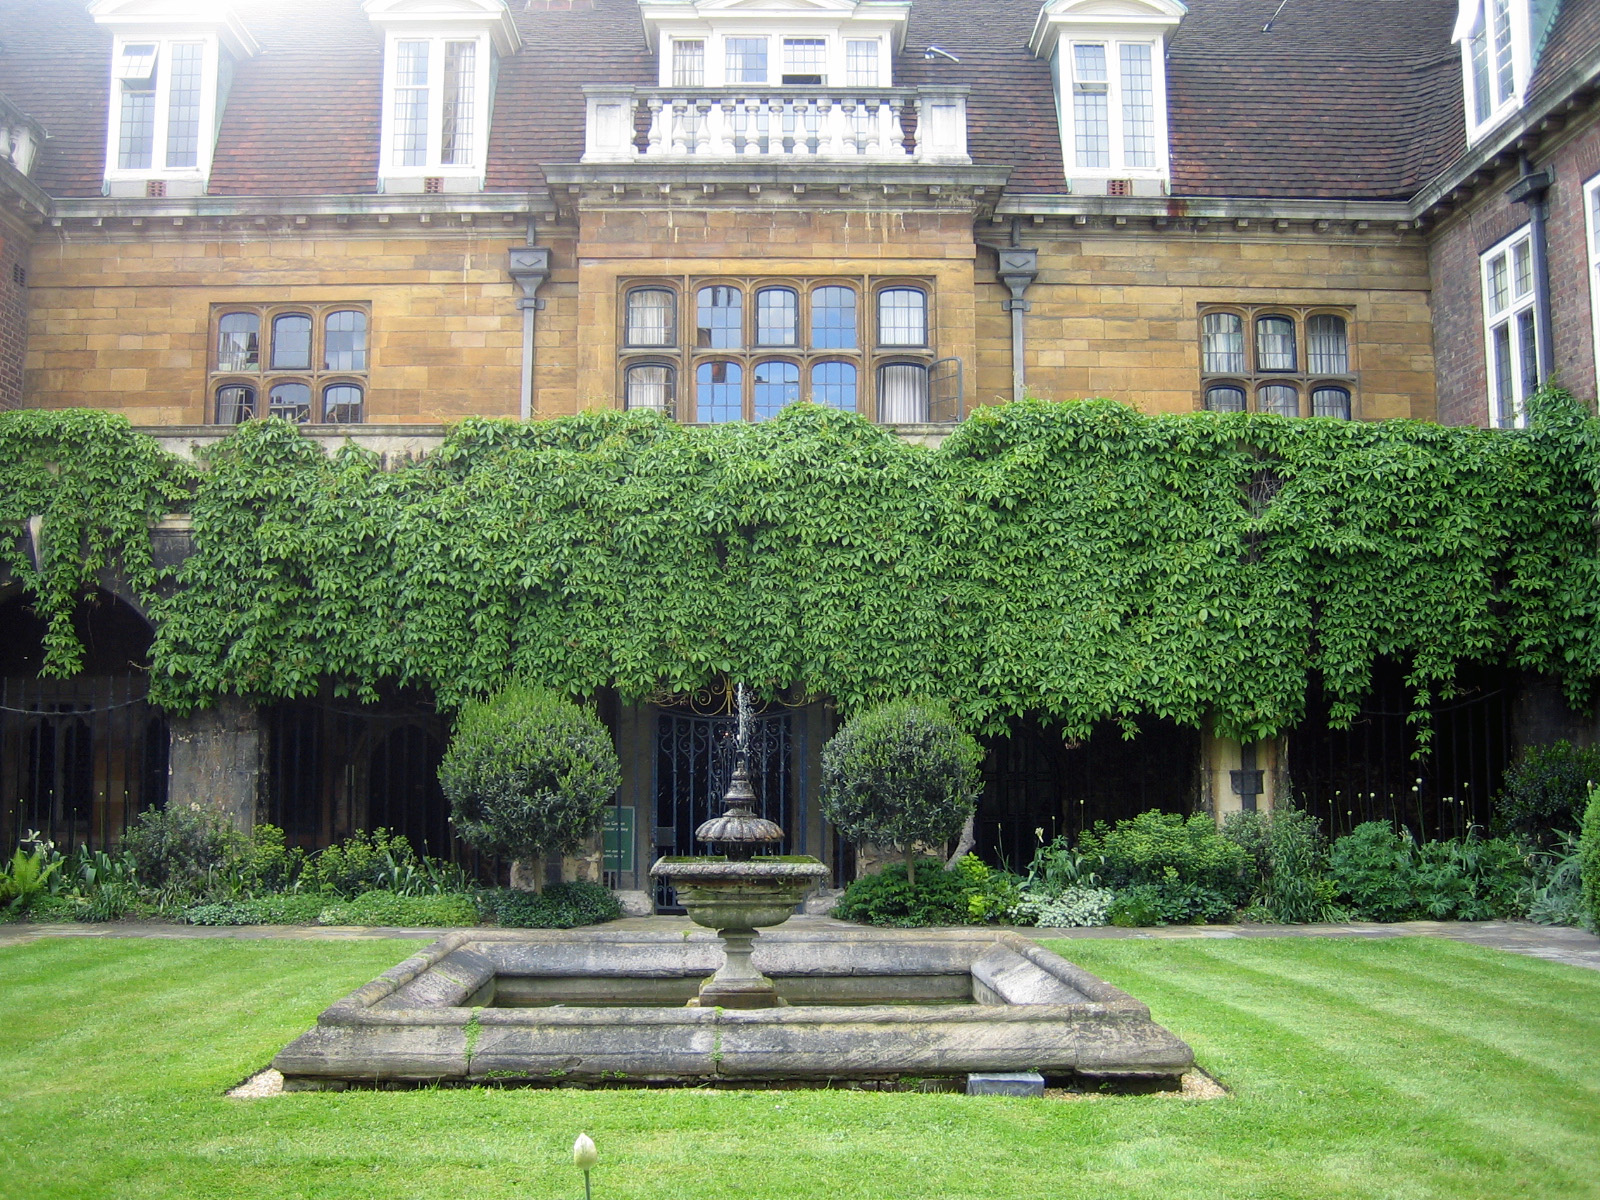 FileAbbey garden and fountainjpg Wikimedia Commons